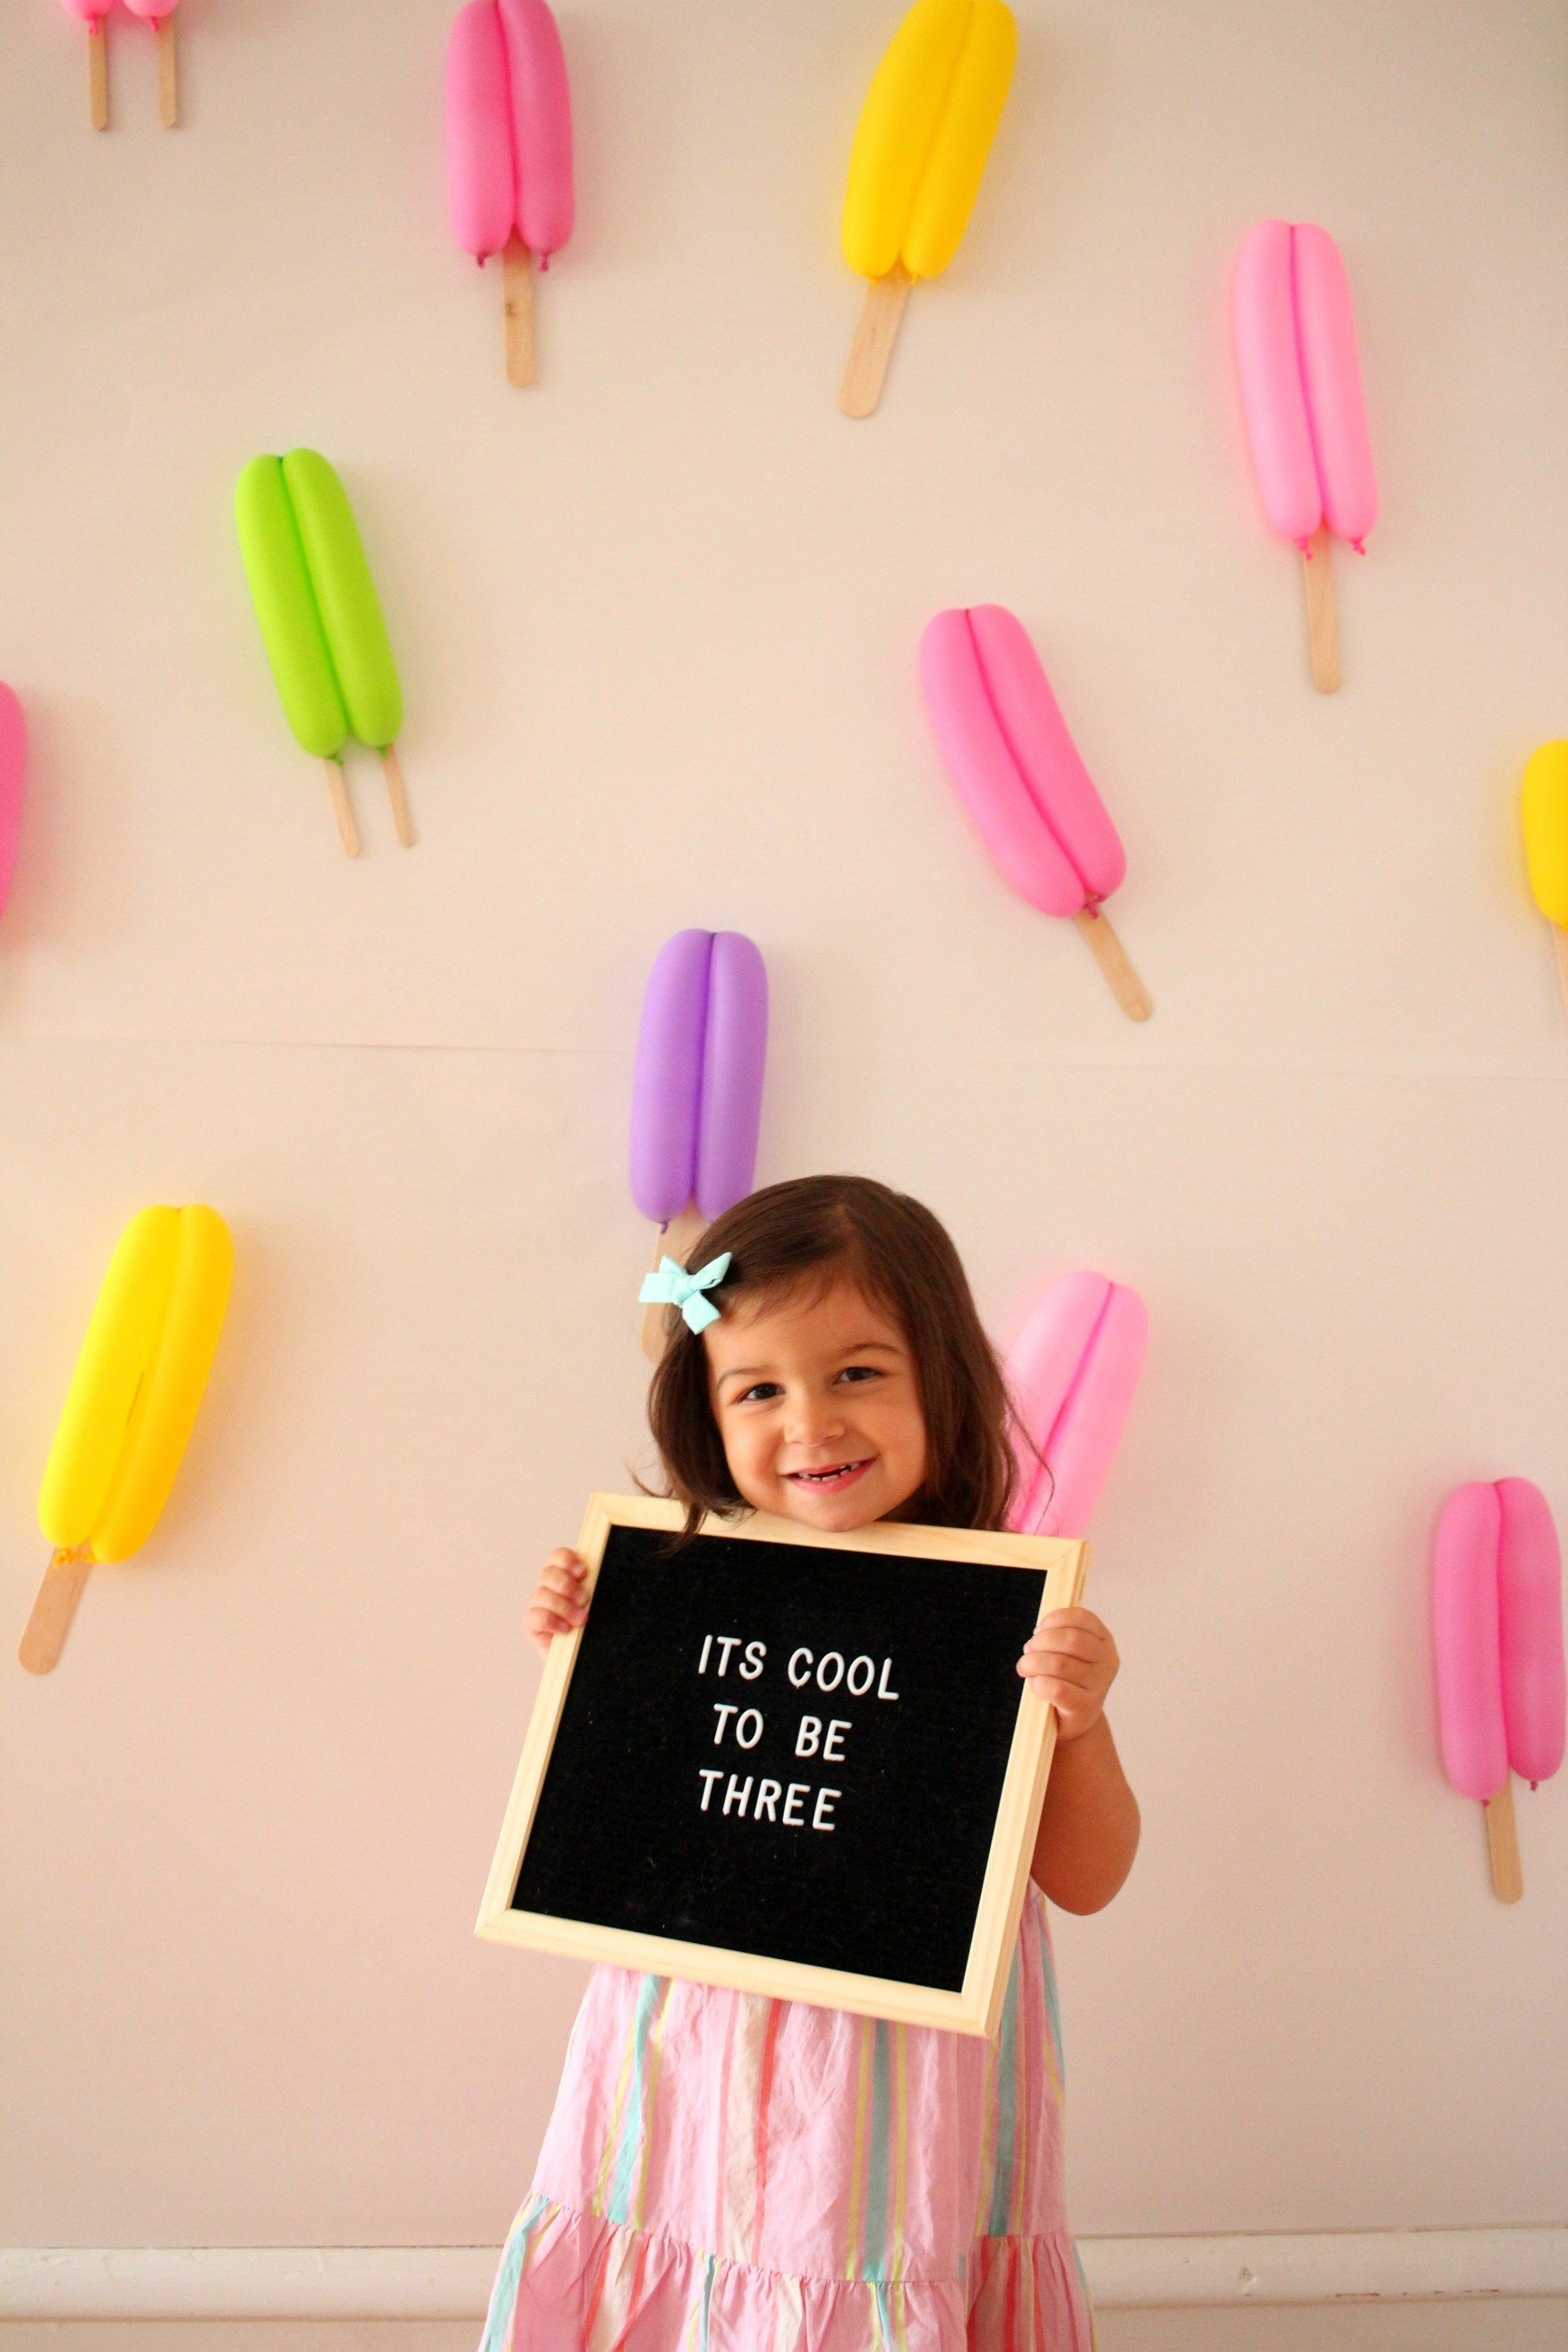 Popsicle Party for Carmendy's 3rd Birthday! - Ice Cream Off Paper Plates